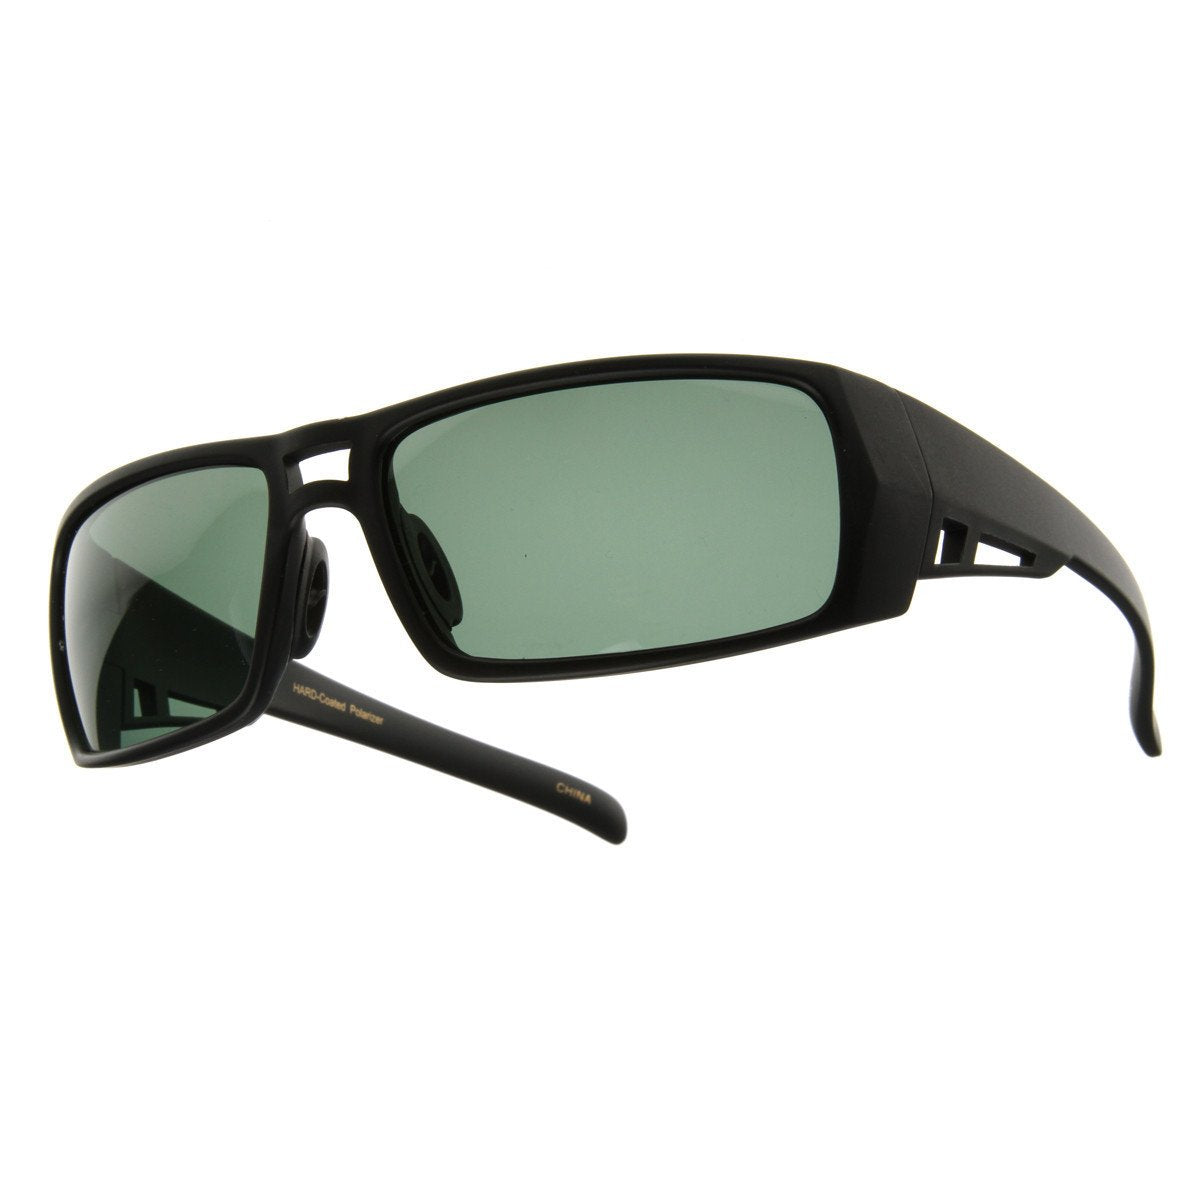 4bffe5a9c1 Premium Action Sports Polarized Mens Wrap Around Aviator Sunglasses 8264 ·  Black